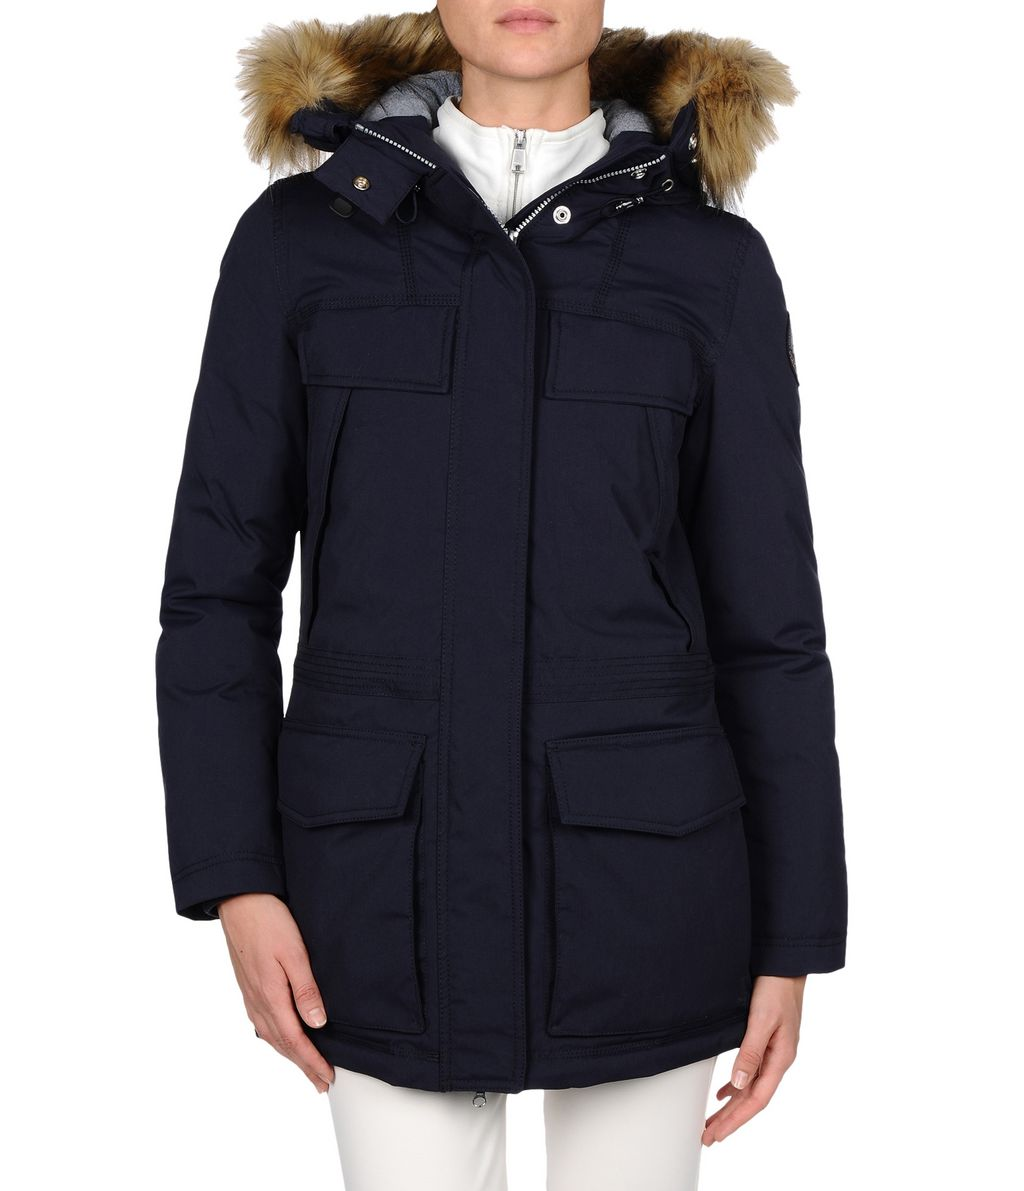 NAPAPIJRI SKIDOO OPEN WOMAN LONG Skidoo D f